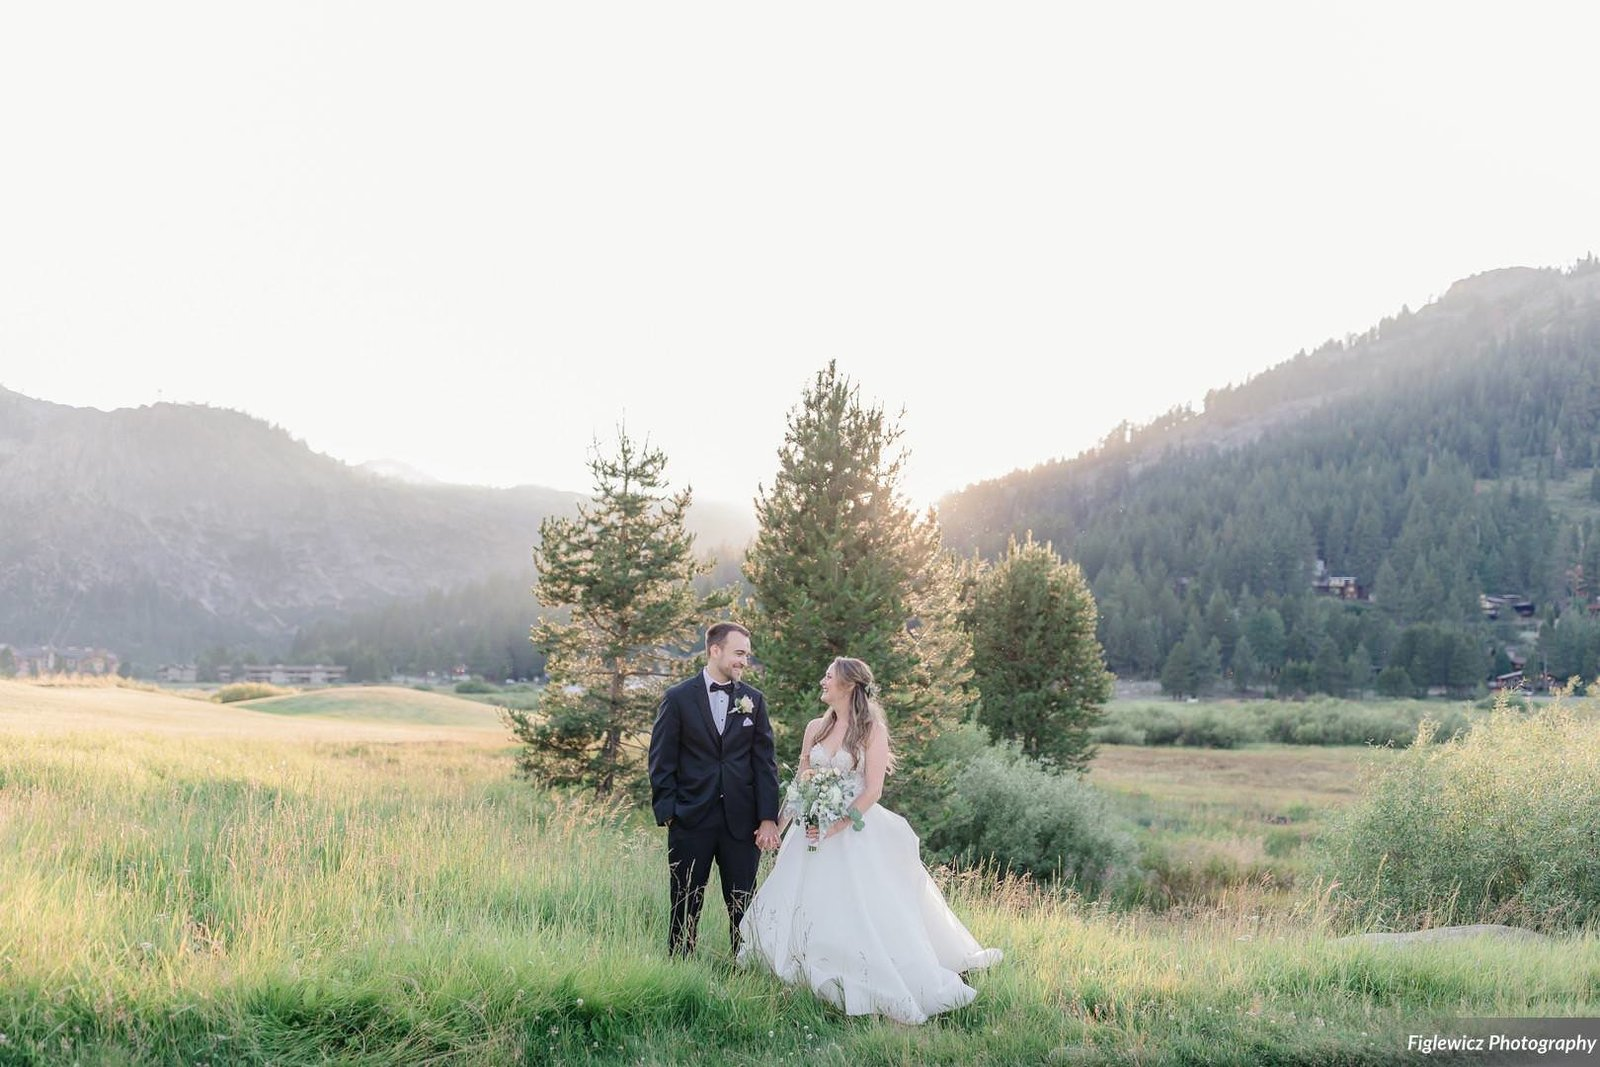 Garden_Tinsley_FiglewiczPhotography_LakeTahoeWeddingSquawValleyCreekTaylorBrendan00143_big